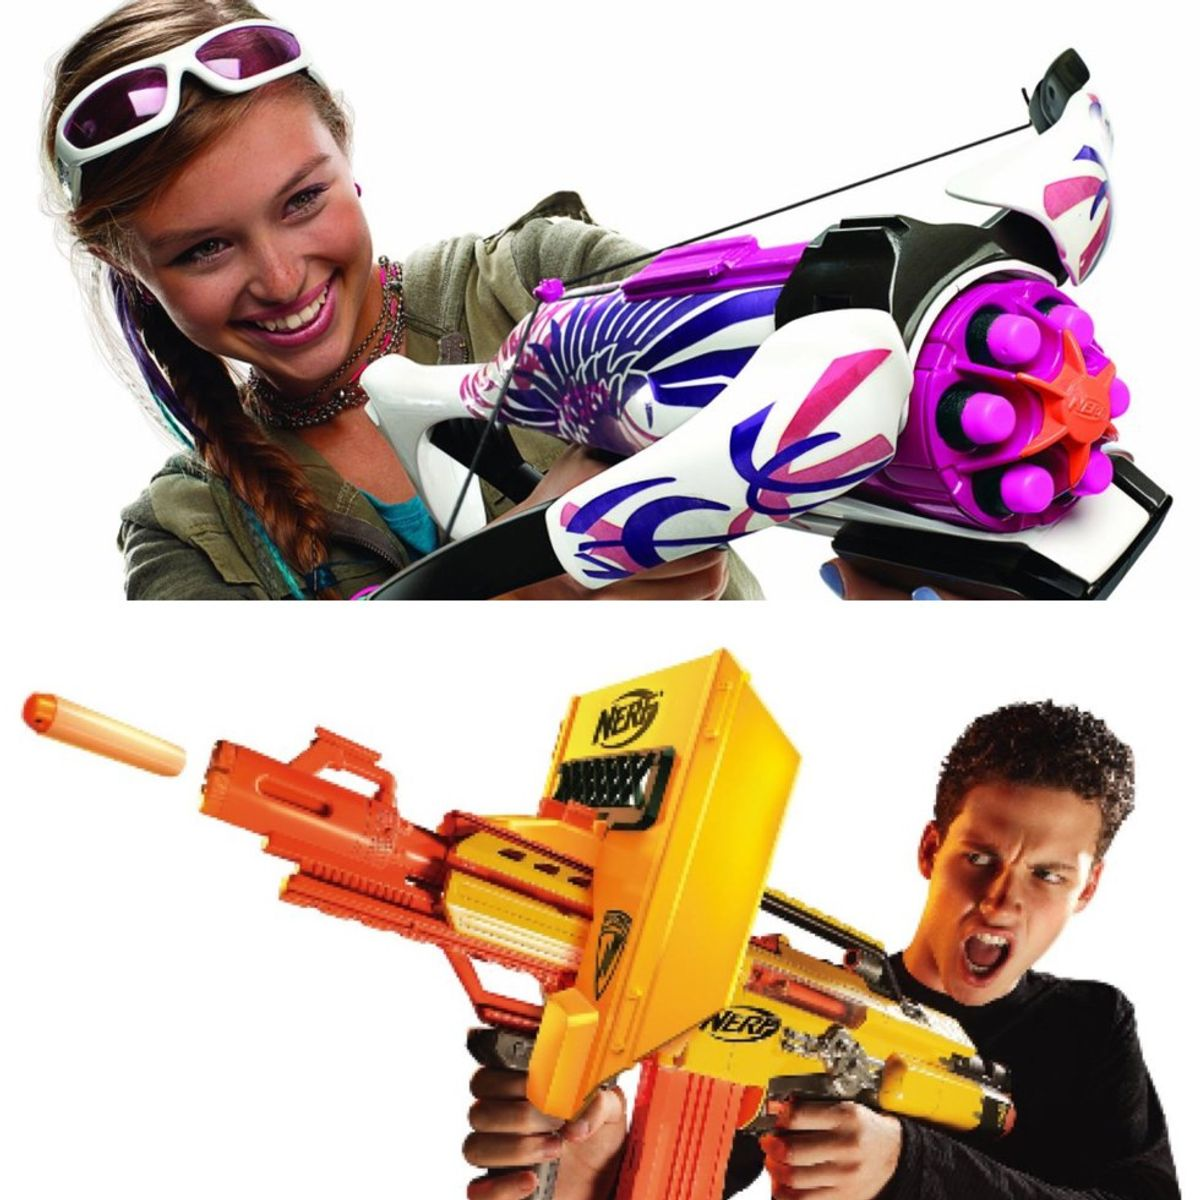 Why Is Marketing For Nerf Guns So Different For Girls Than Boys?